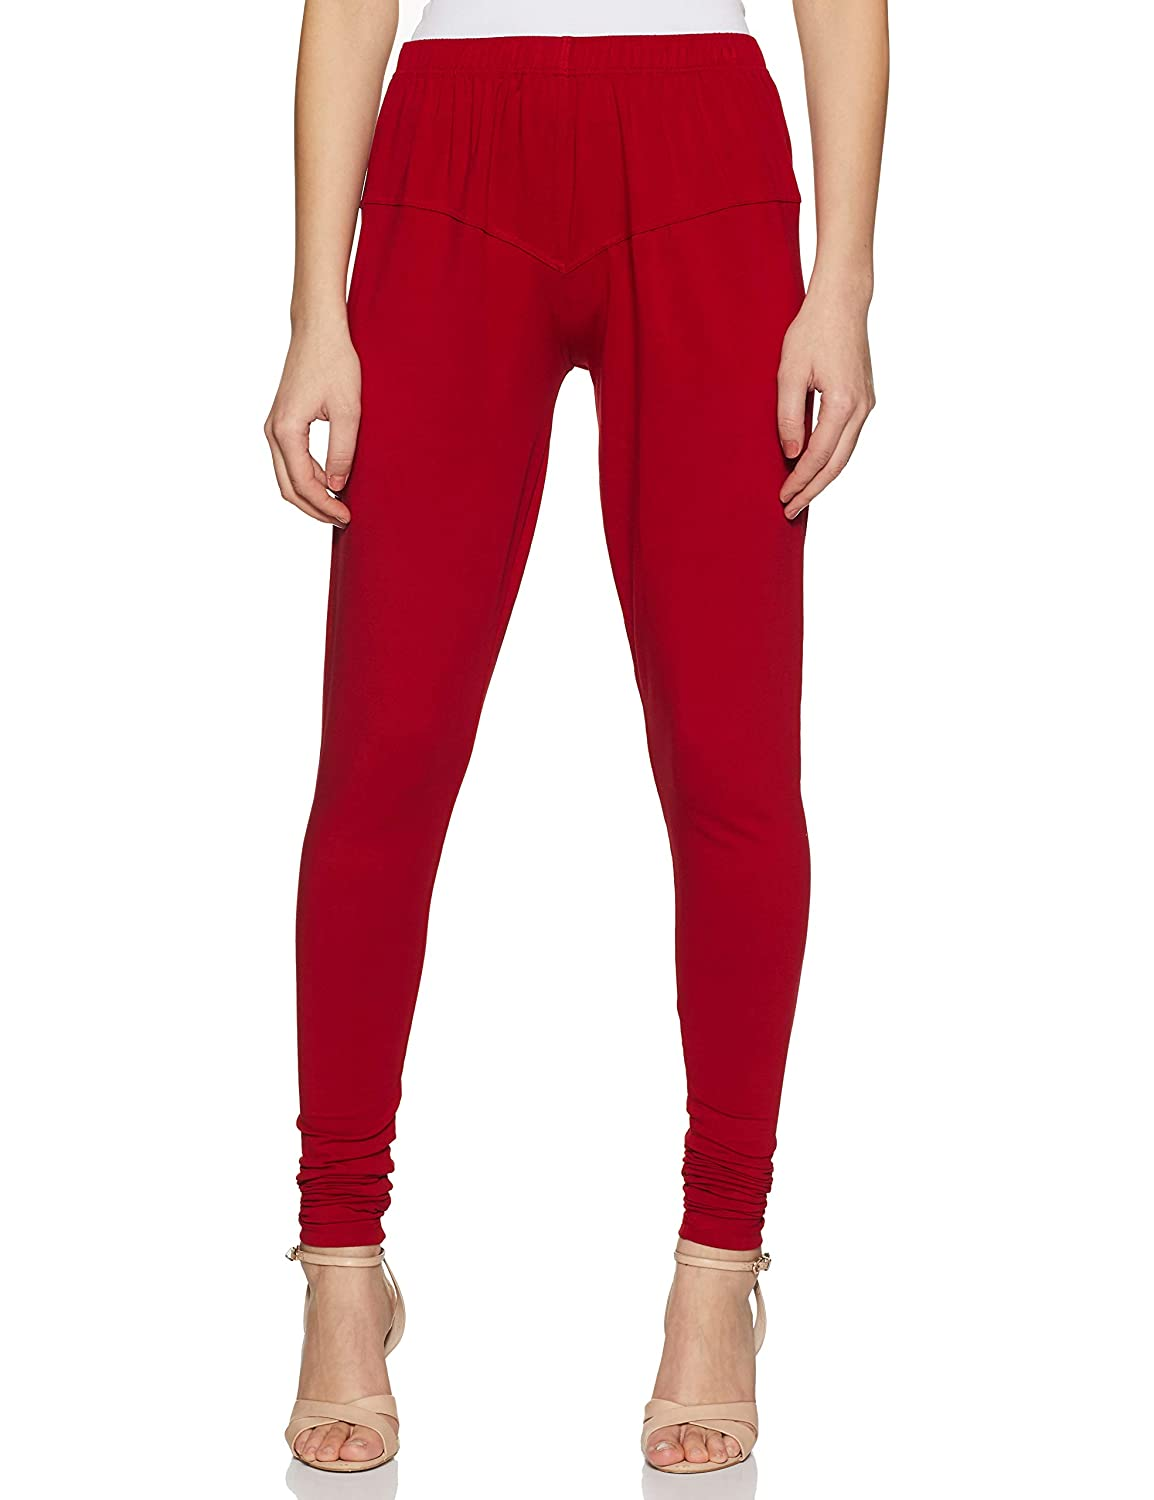 LUX LYRA Women's Leggings IC Legg Parry RED_Freesize